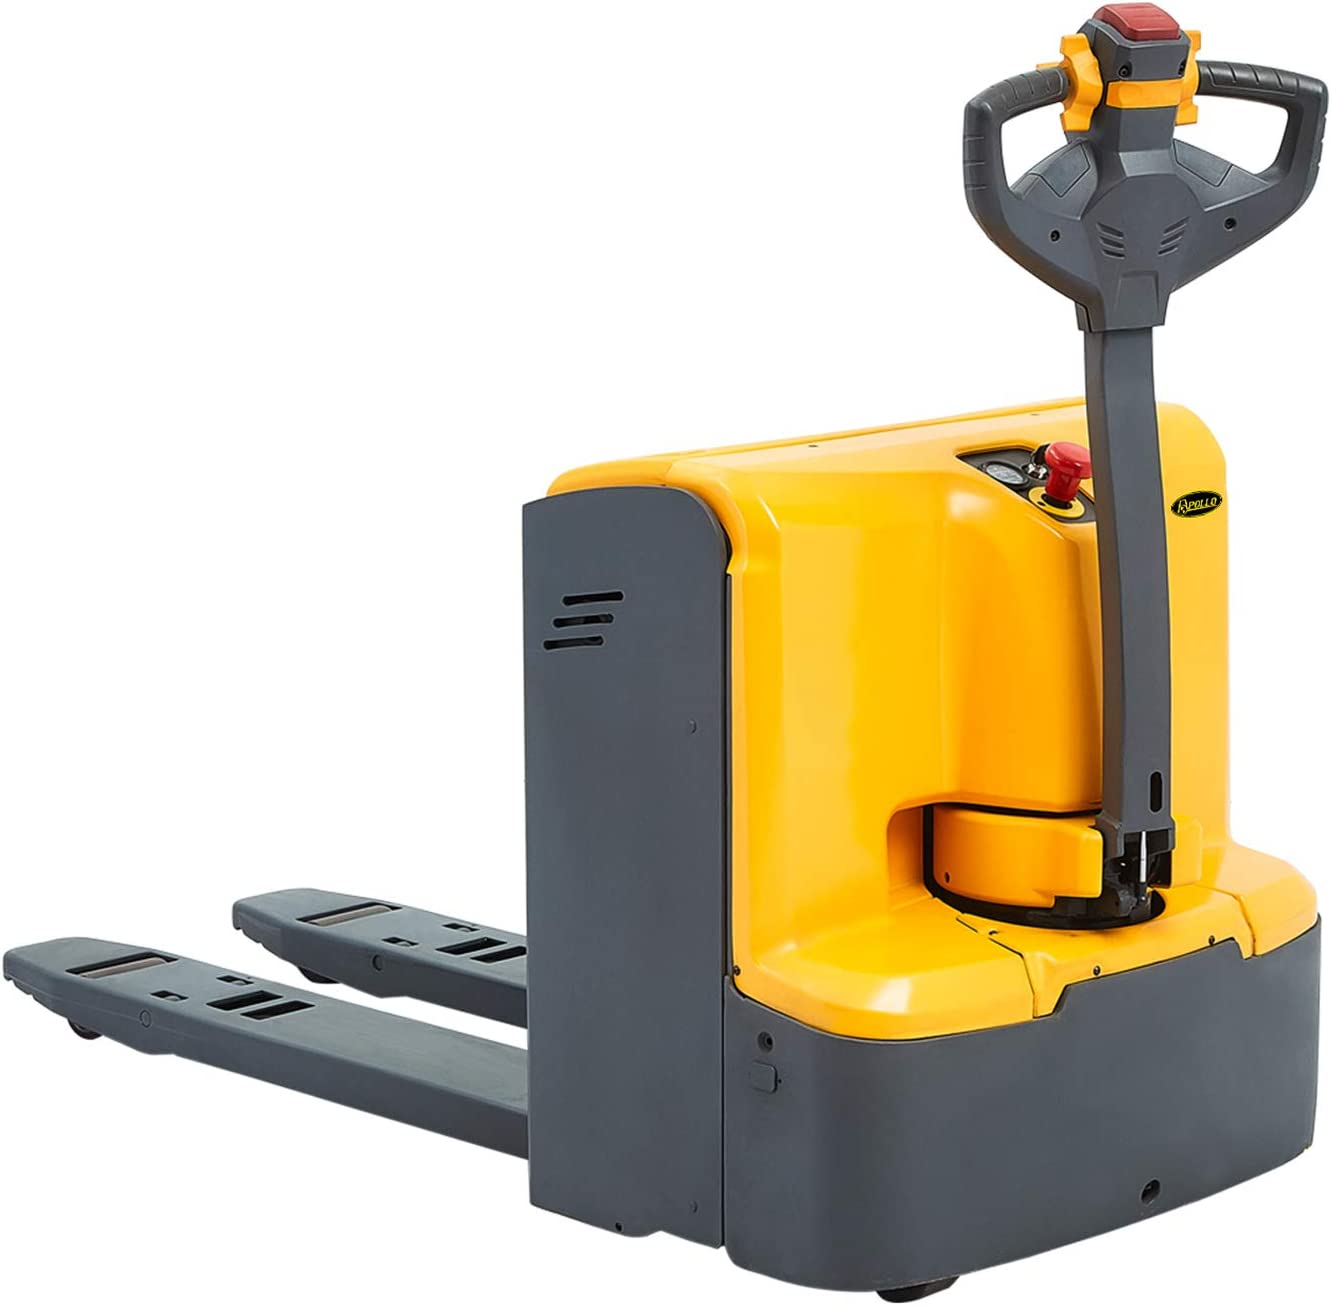 APOLLOLIFT Electric Powered Walkie Pallet Capacity 4400lbs Jack A surprise price is OFFer realized